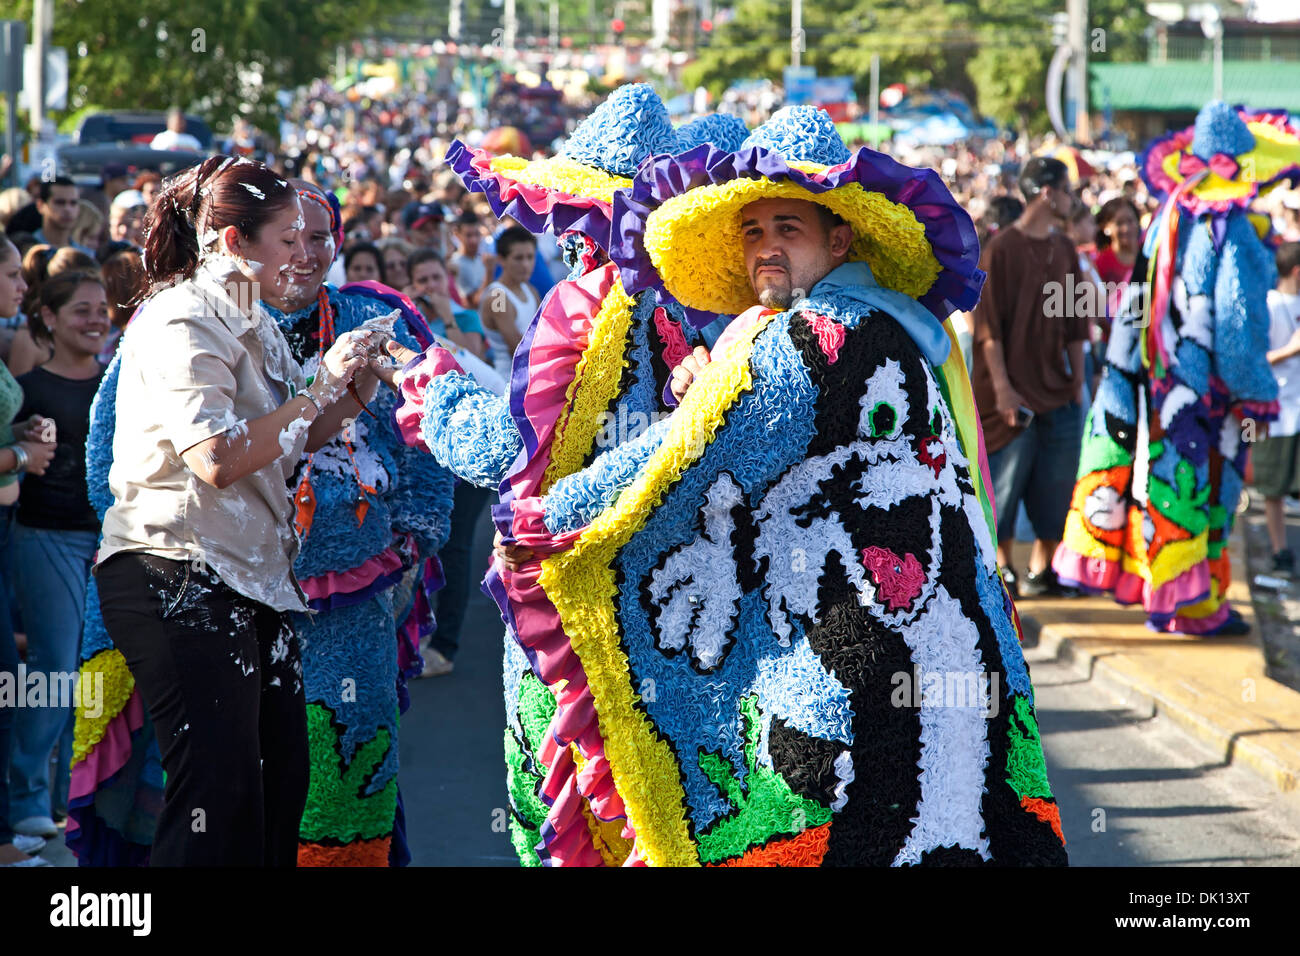 Woman covered in shaving cream, man in costume and crowd, Hatillo Mask Festival, Hatillo, Puerto Rico - Stock Image